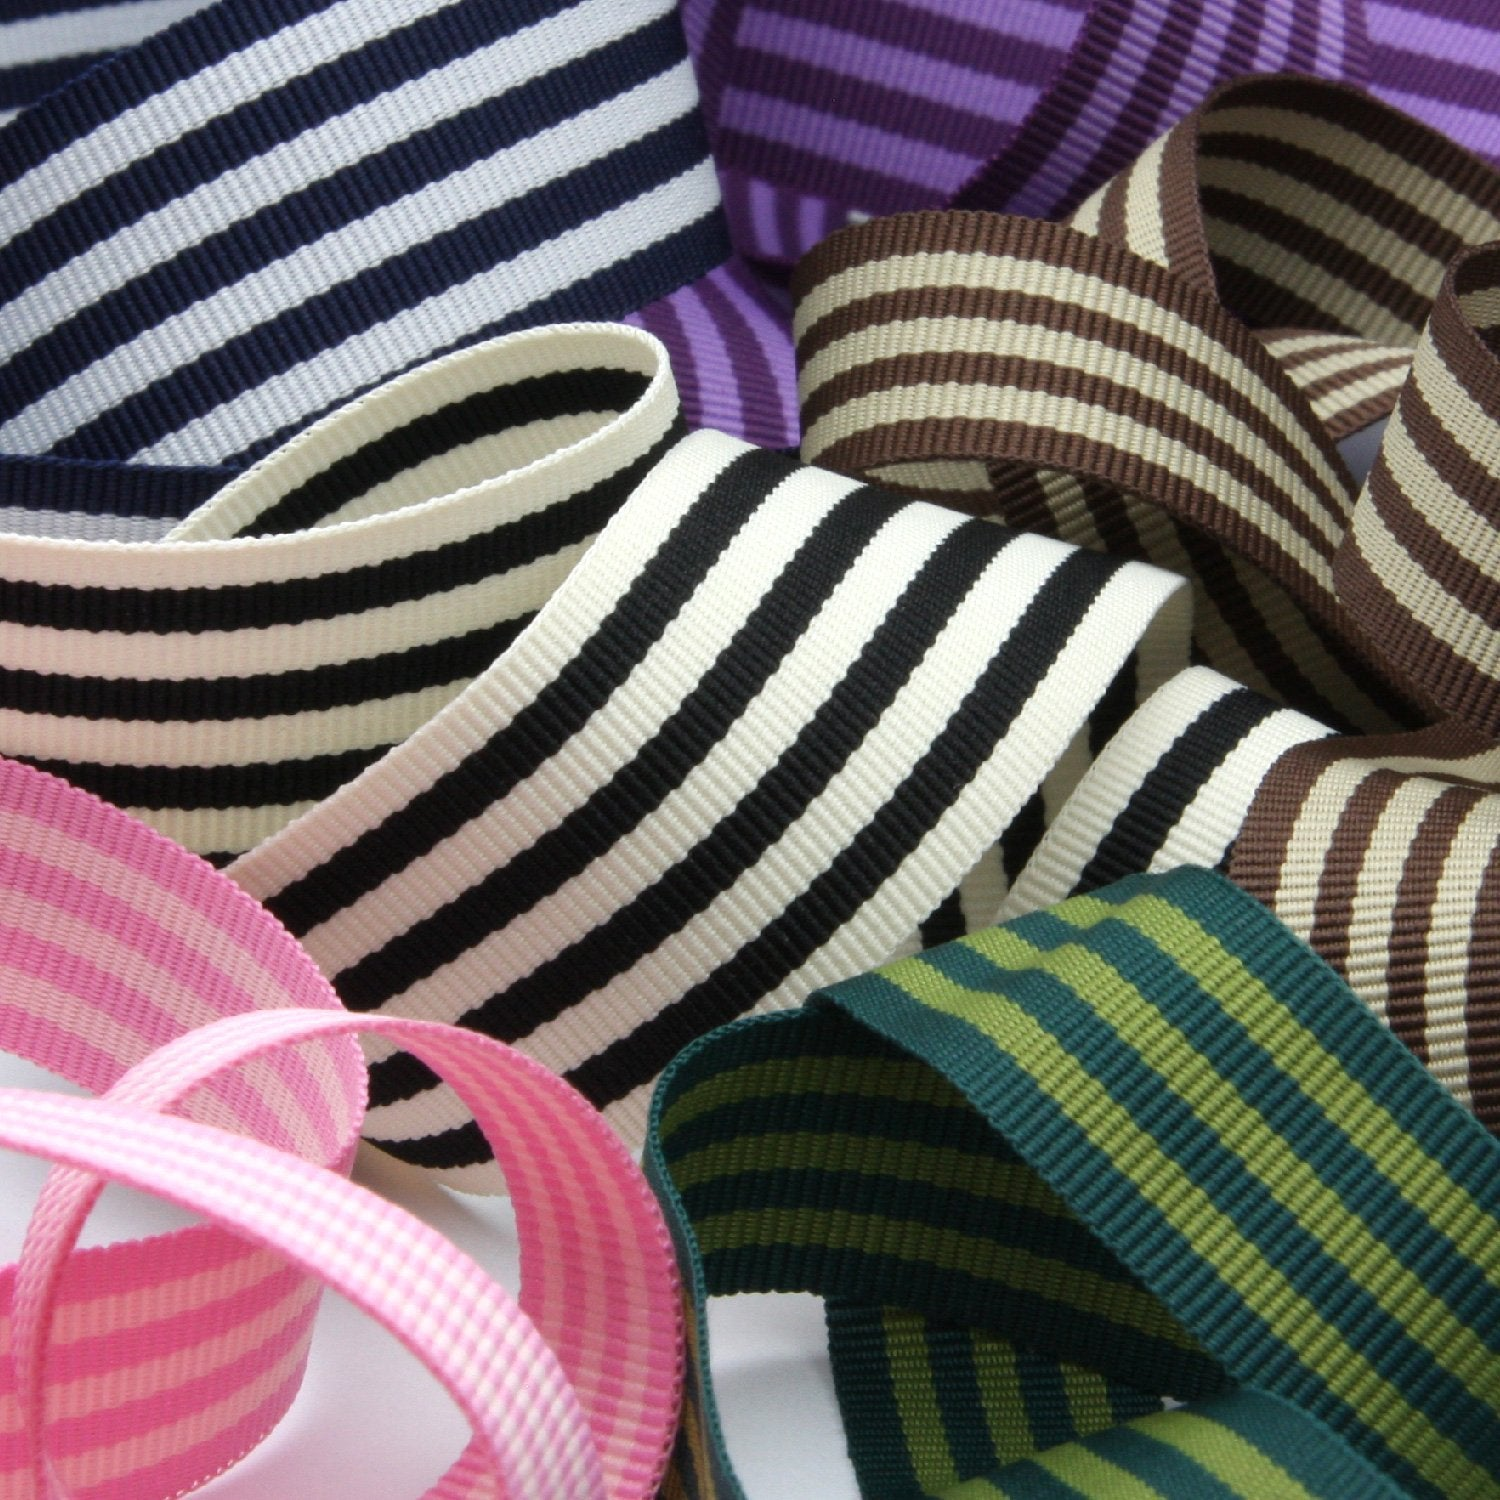 FUJIYAMA RIBBON [Wholesale] Stripe Grosgrain Ribbon approx.15mm 30 Meters Roll